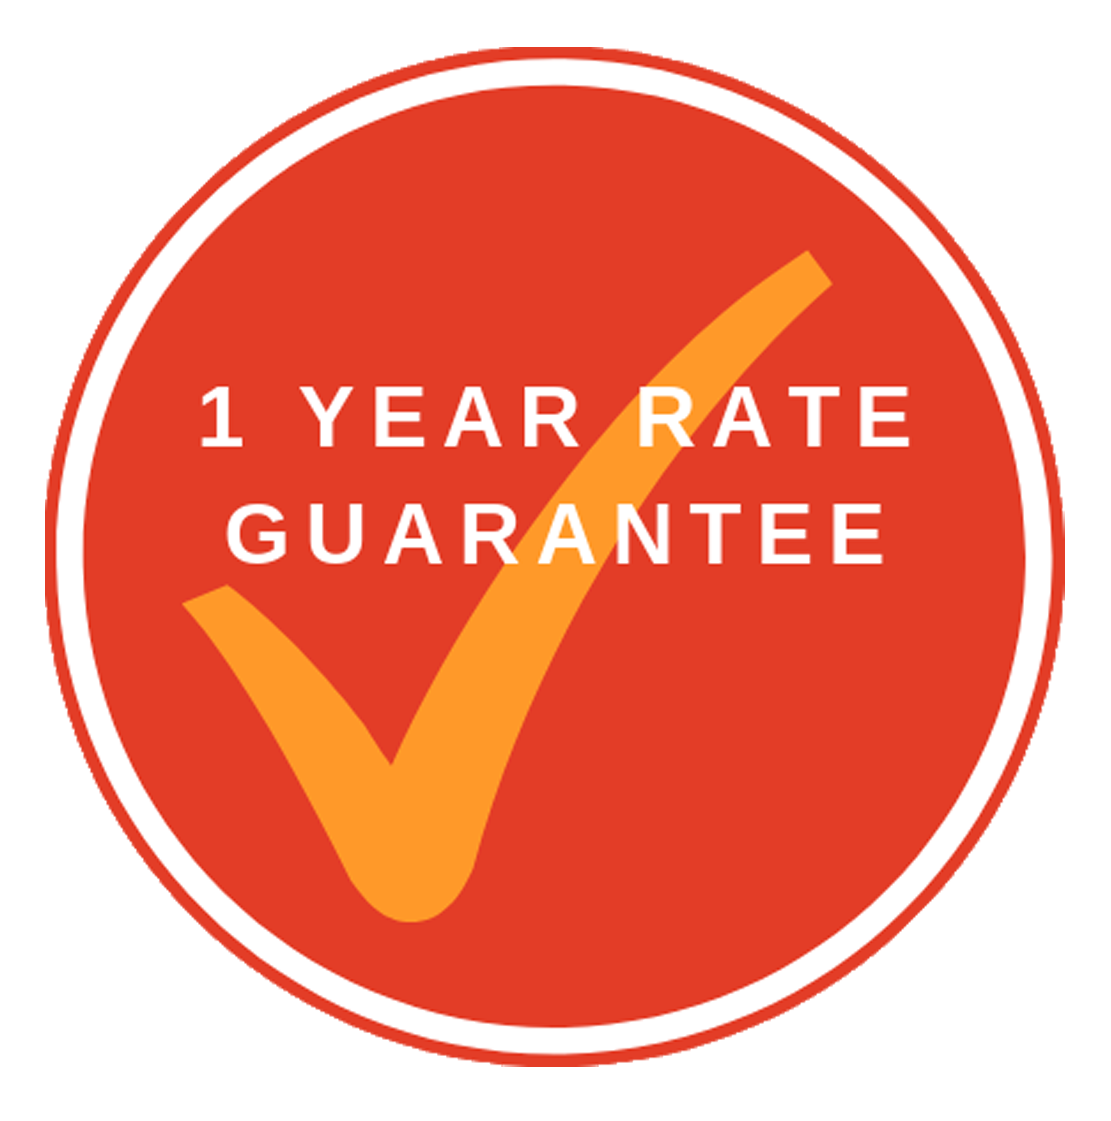 We stand by our 1 year rate guarantee!